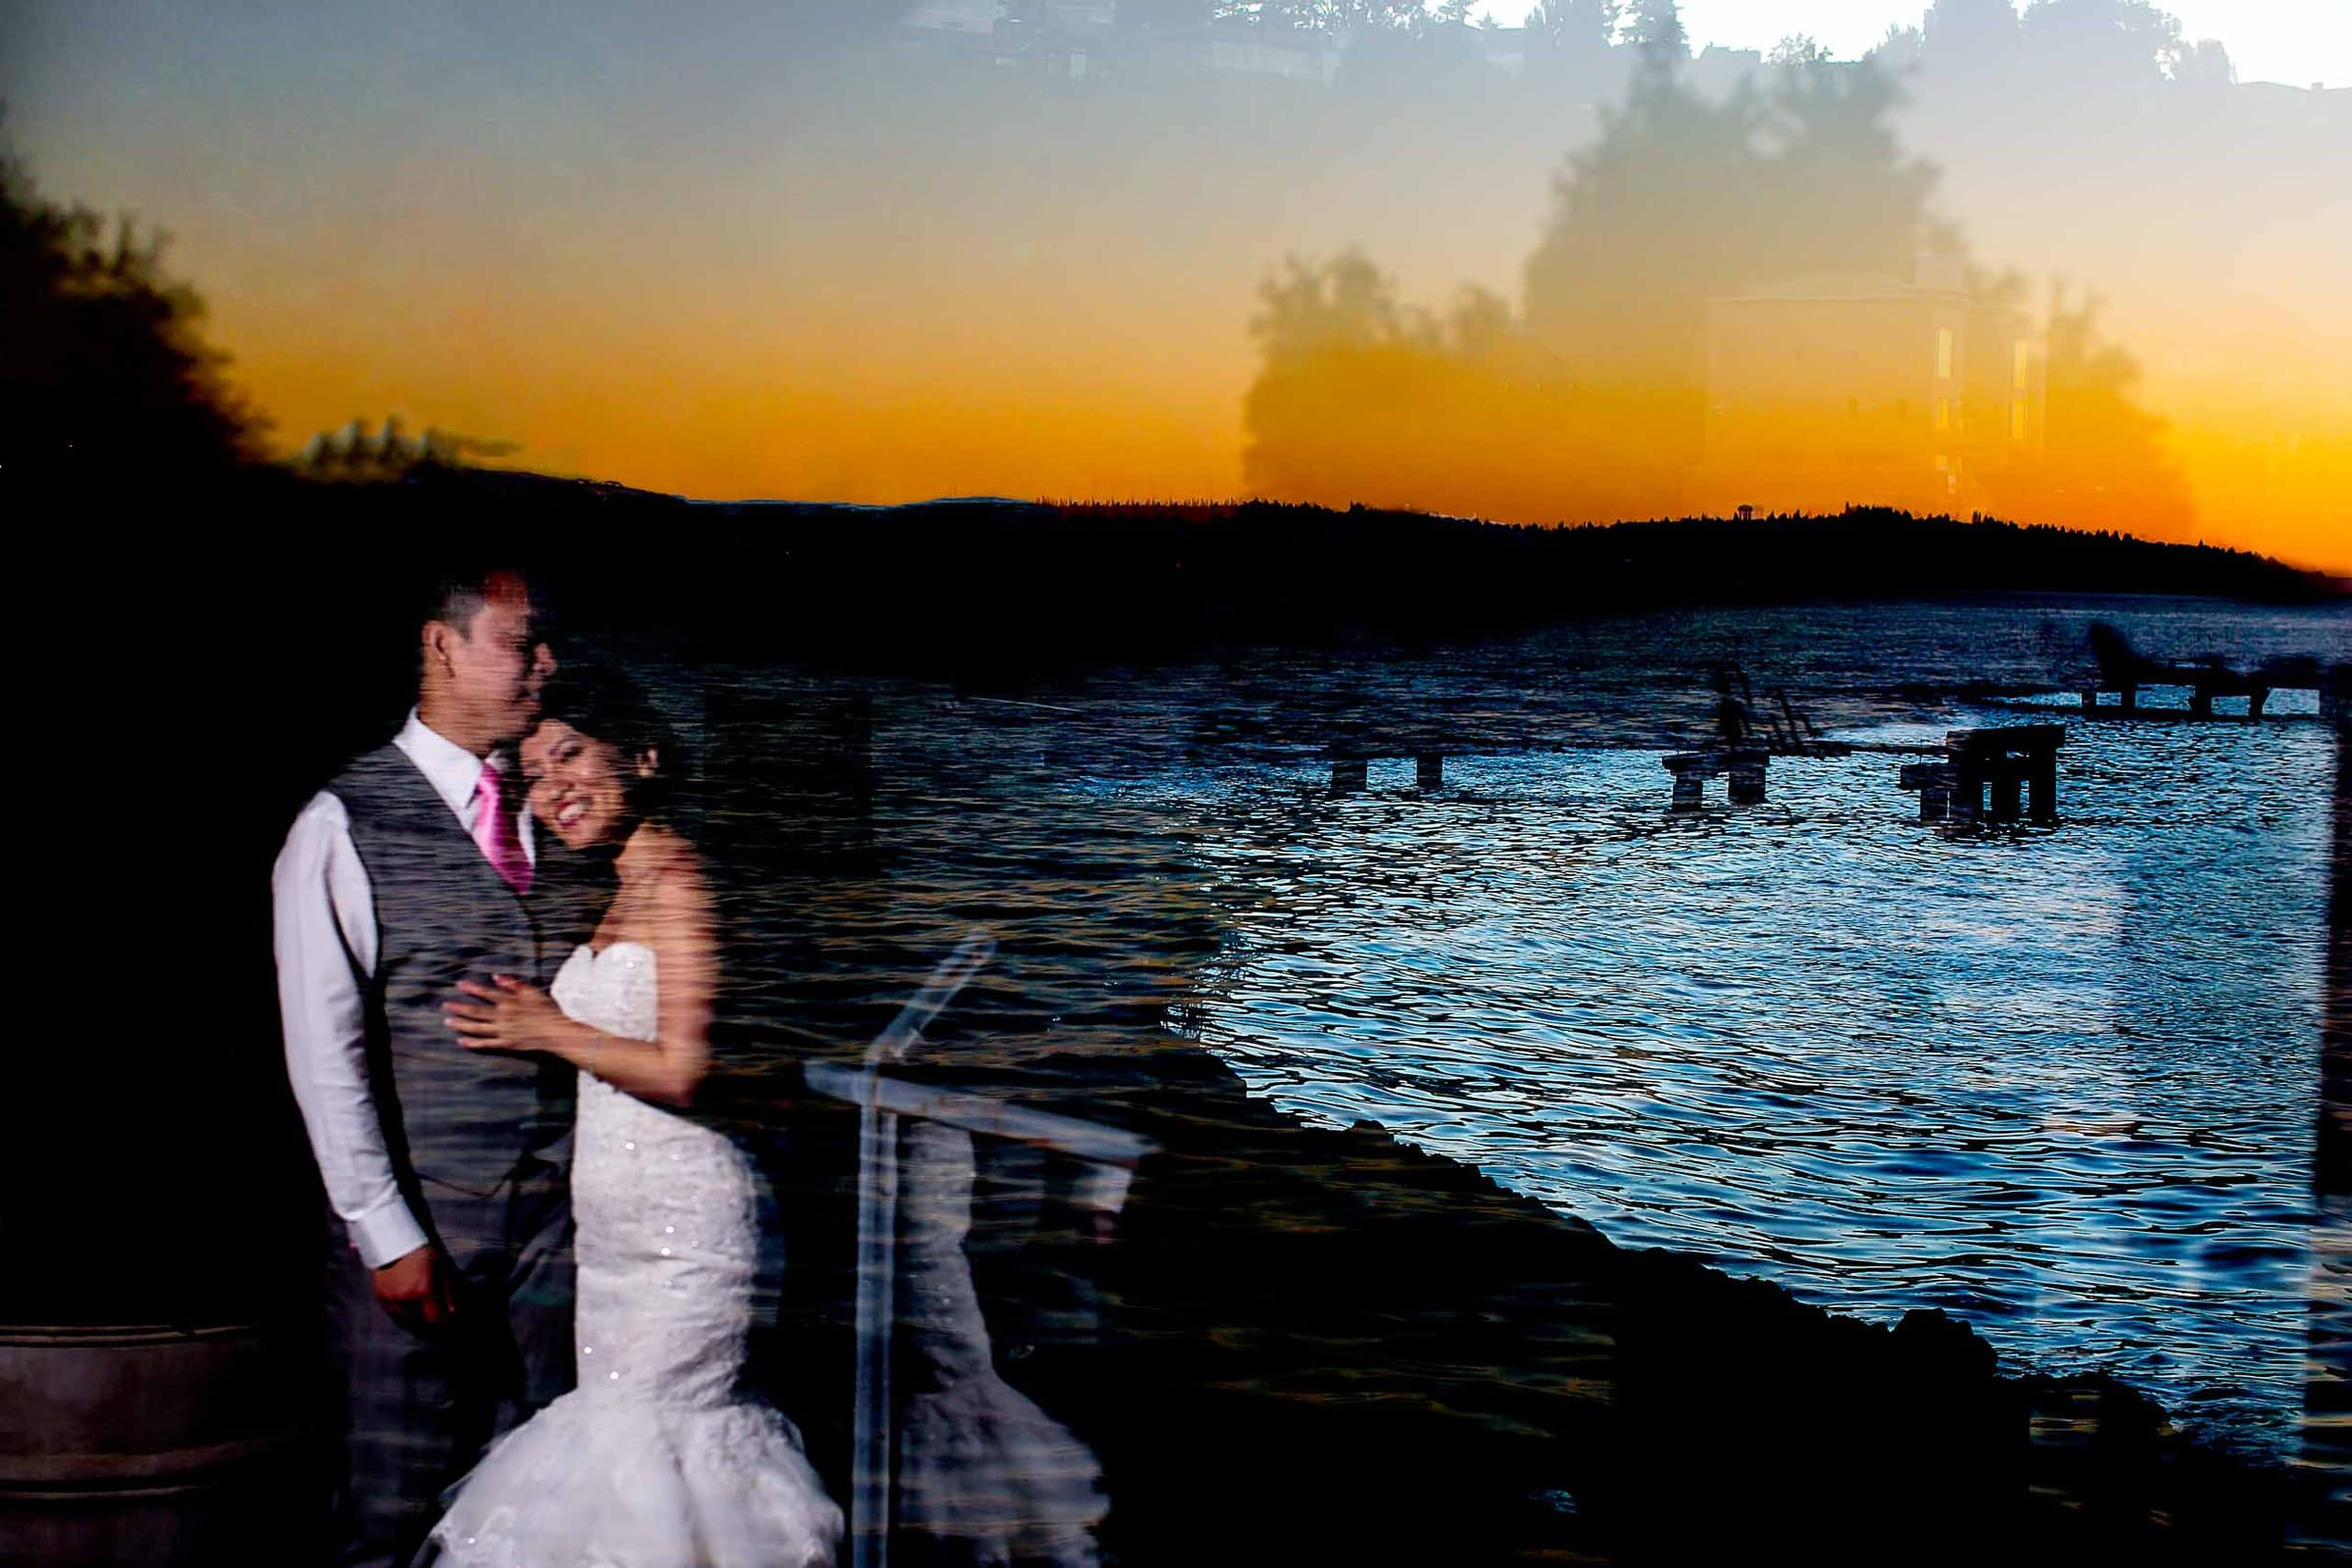 Creative portrait of a bride and groom during their Saltys wedding ceremony with Seattle's city scape in the background.